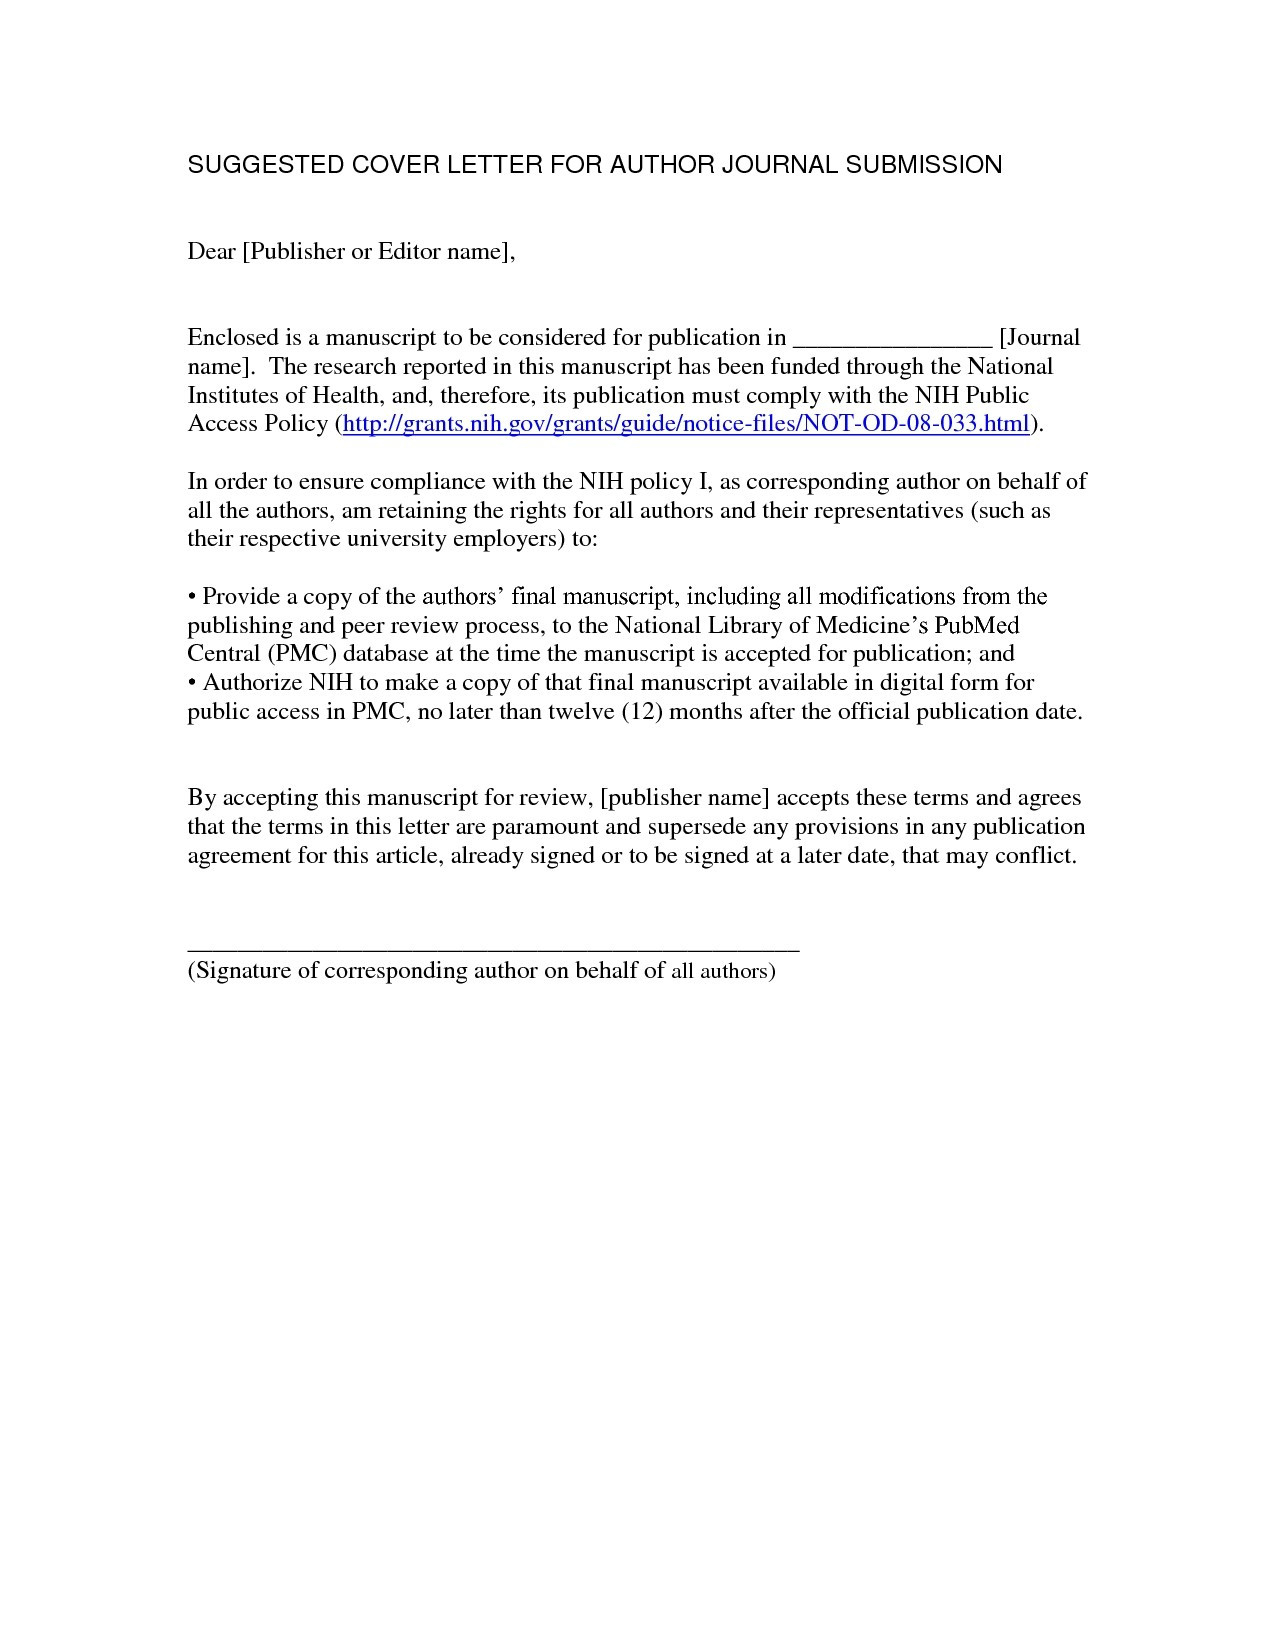 Finance Cover Letter Template - Finance Cover Letter Examples Beautiful Cover Letter Corporate